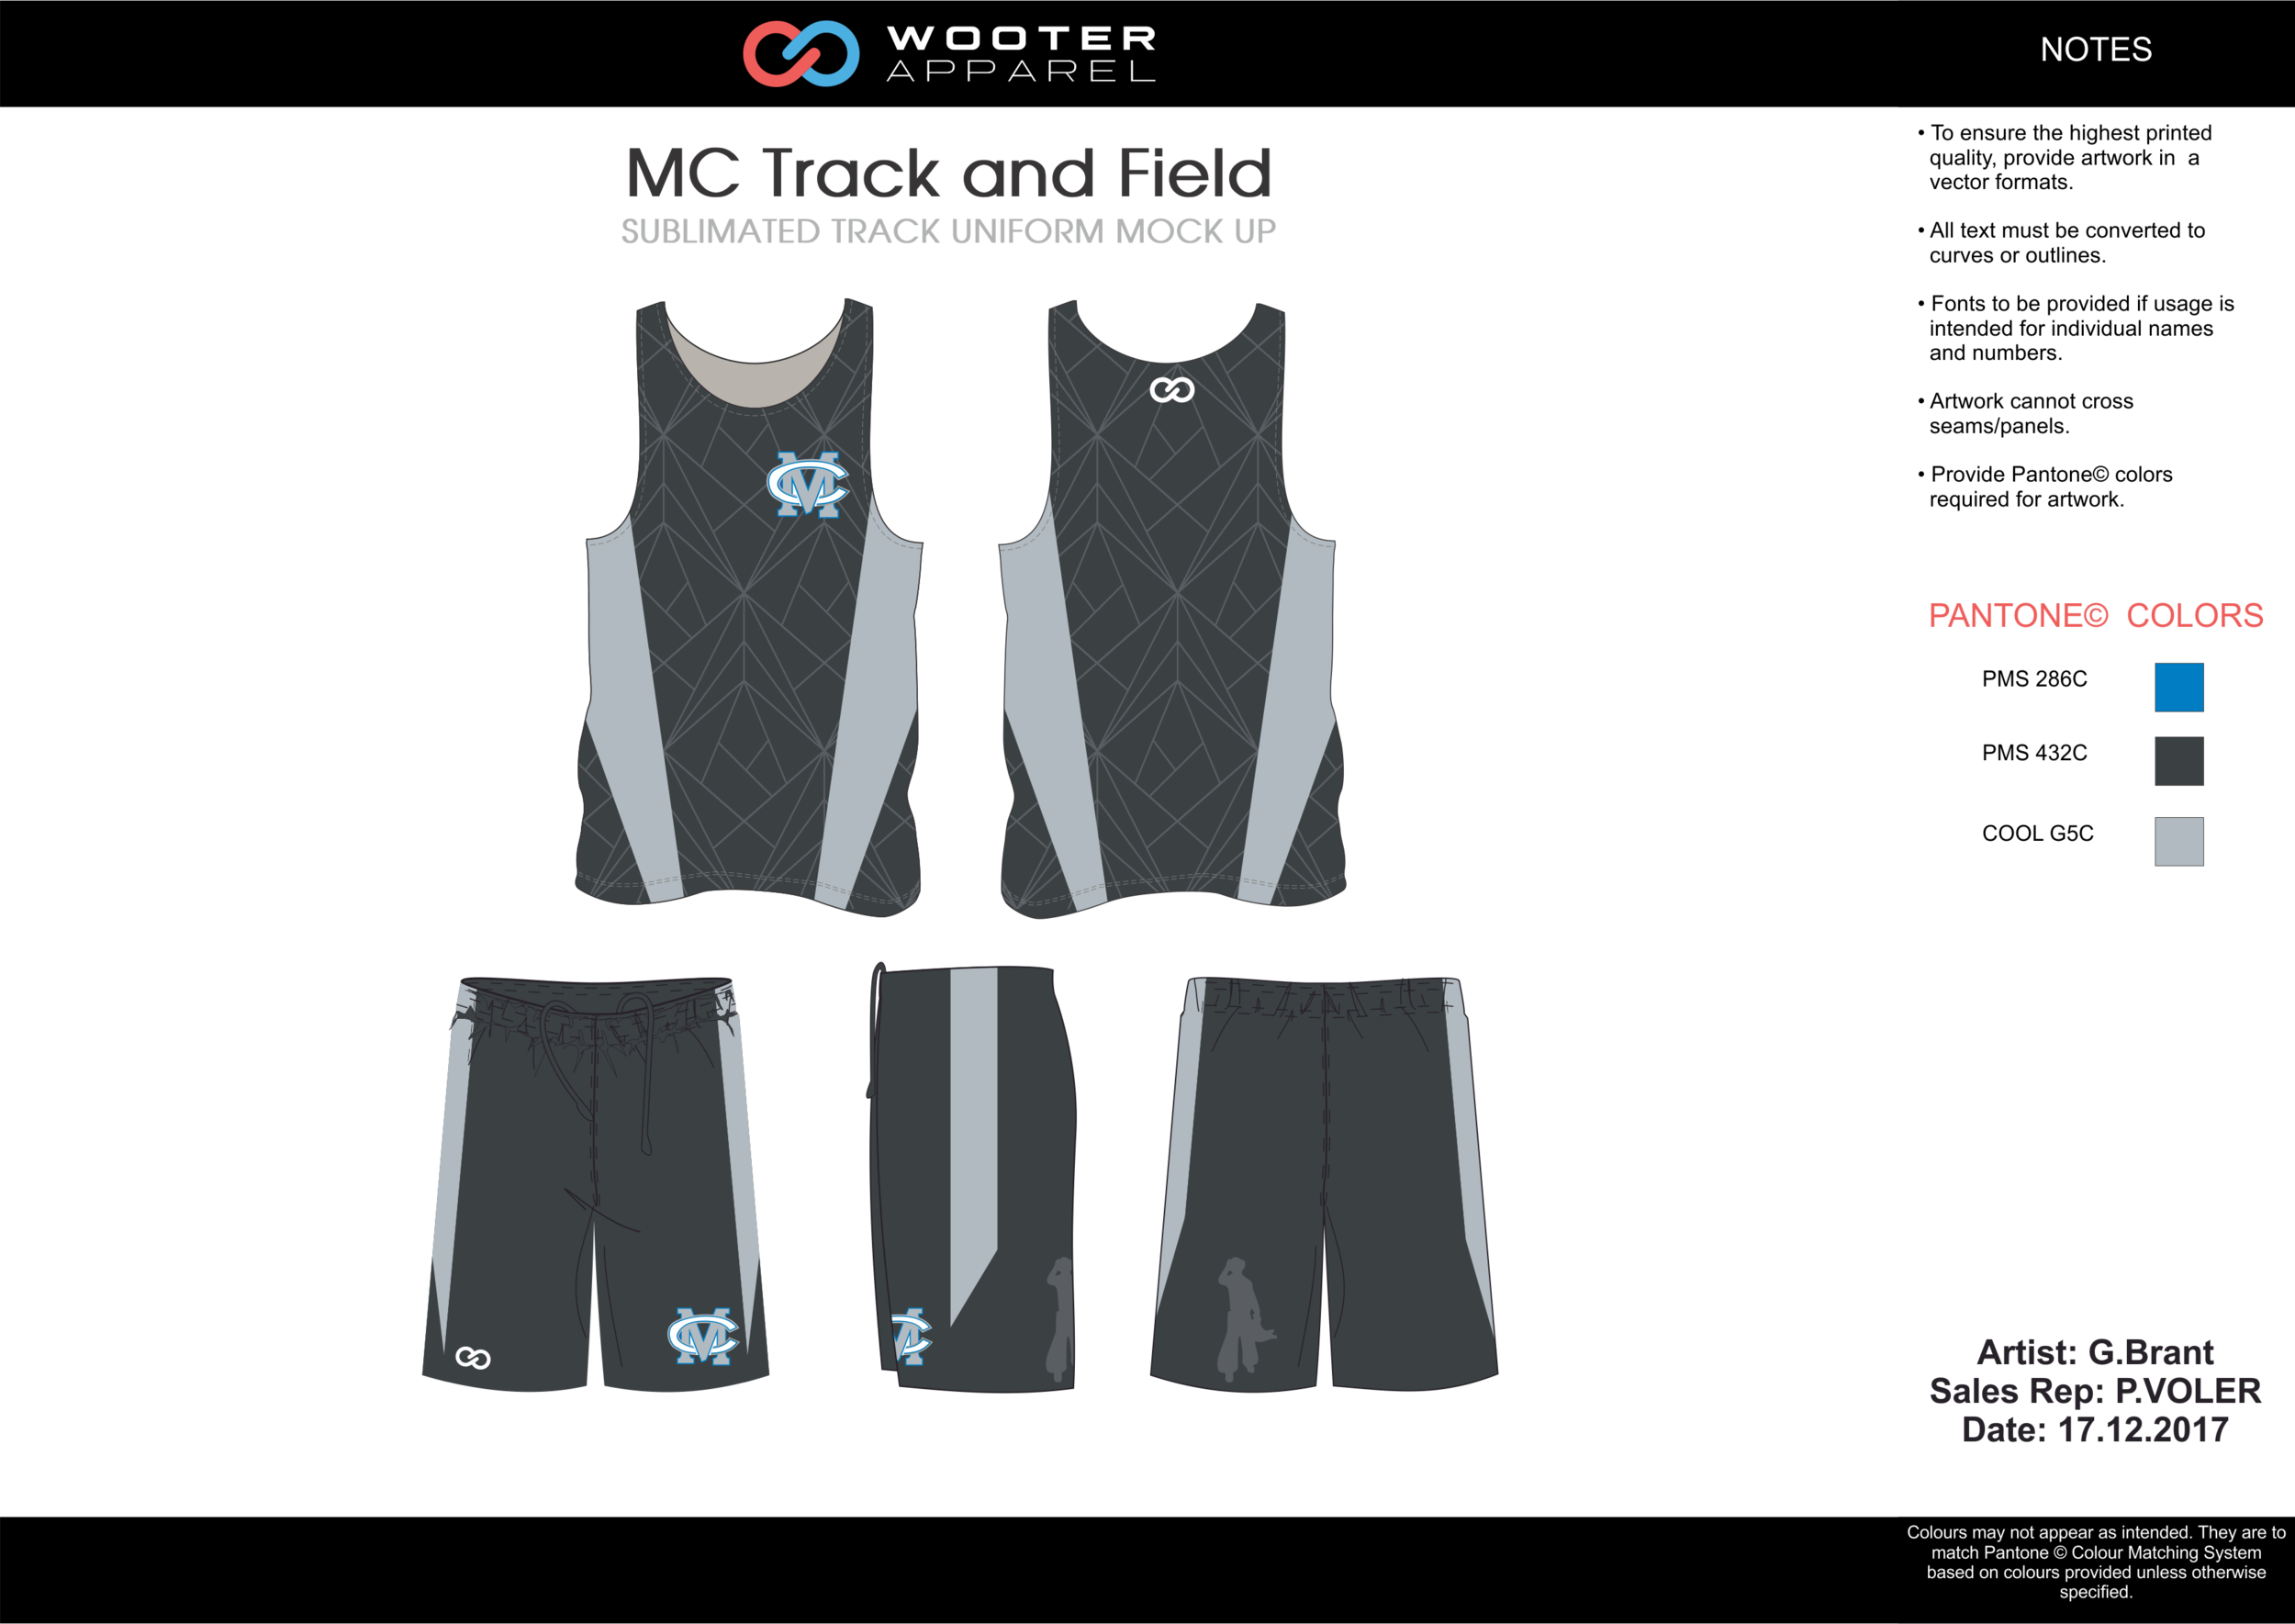 MC Track and Field Blue Black and Gray Basketball Track Uniforms Jerseys and Shorts